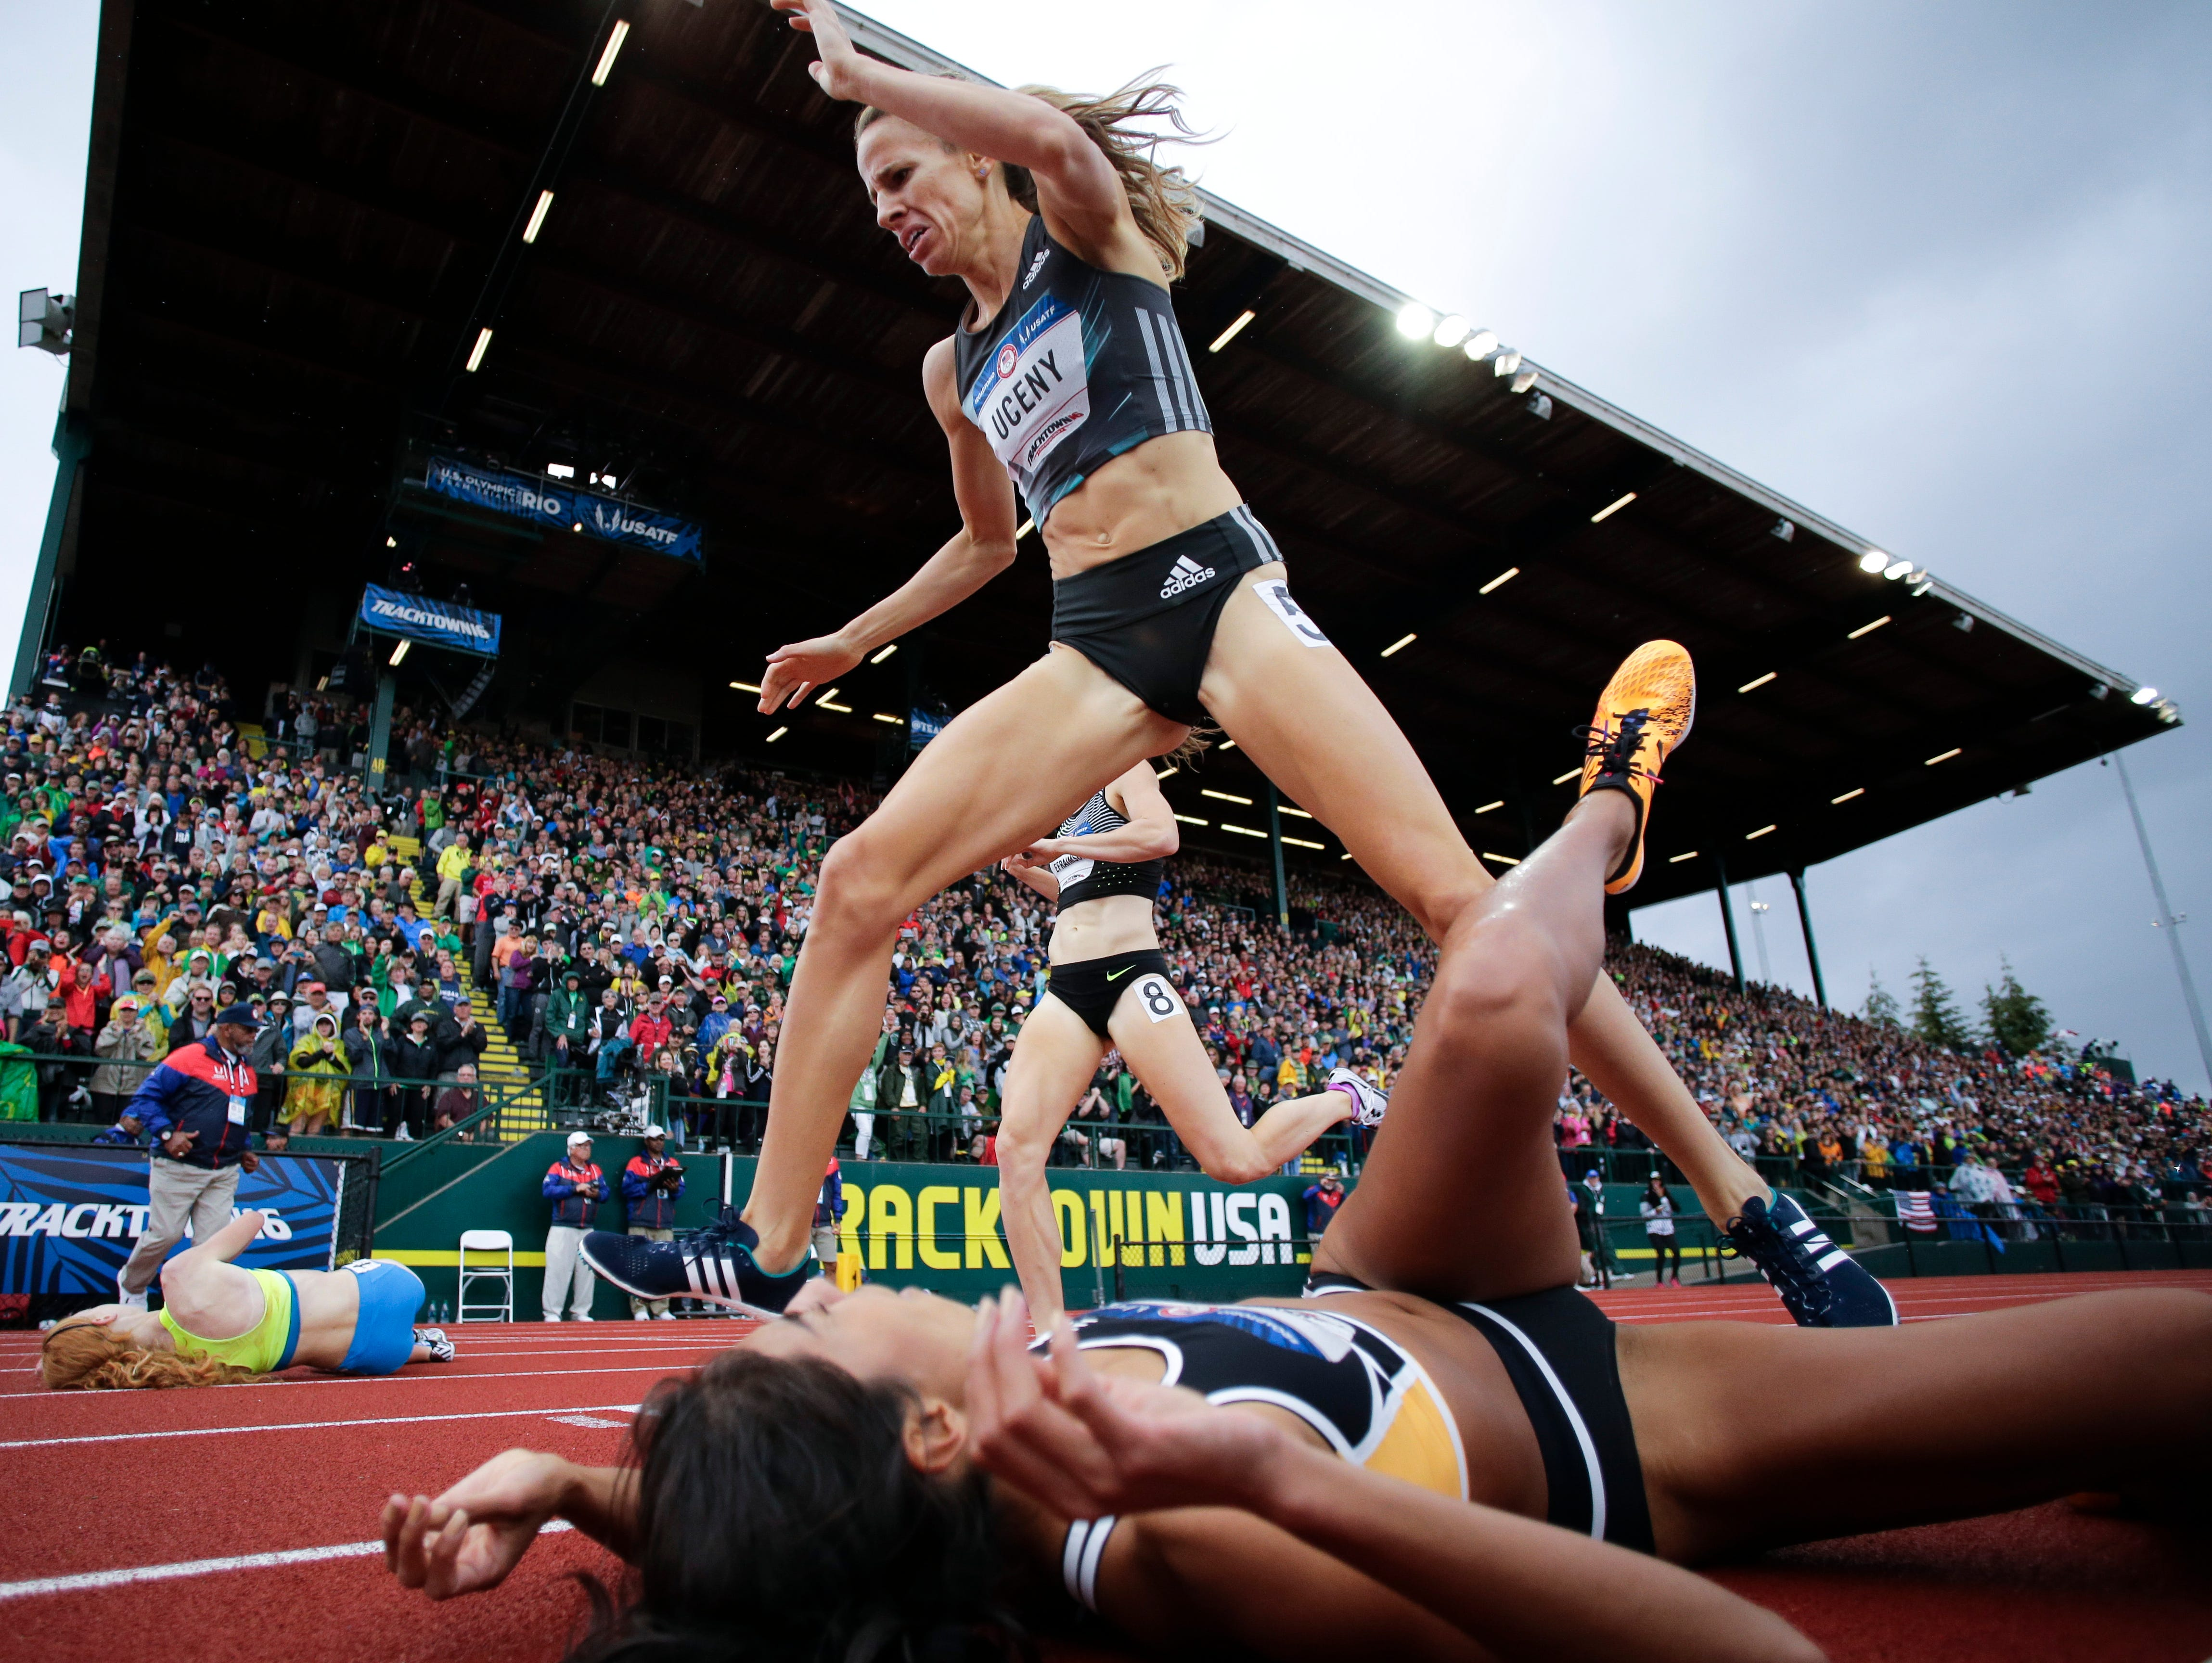 Morgan Uceny, top, steps over Brenda Martinez at the finish line in the finals of the women's 1500-meter run with at the U.S. Olympic Track and Field Trials, July 10, 2016, in Eugene Ore.